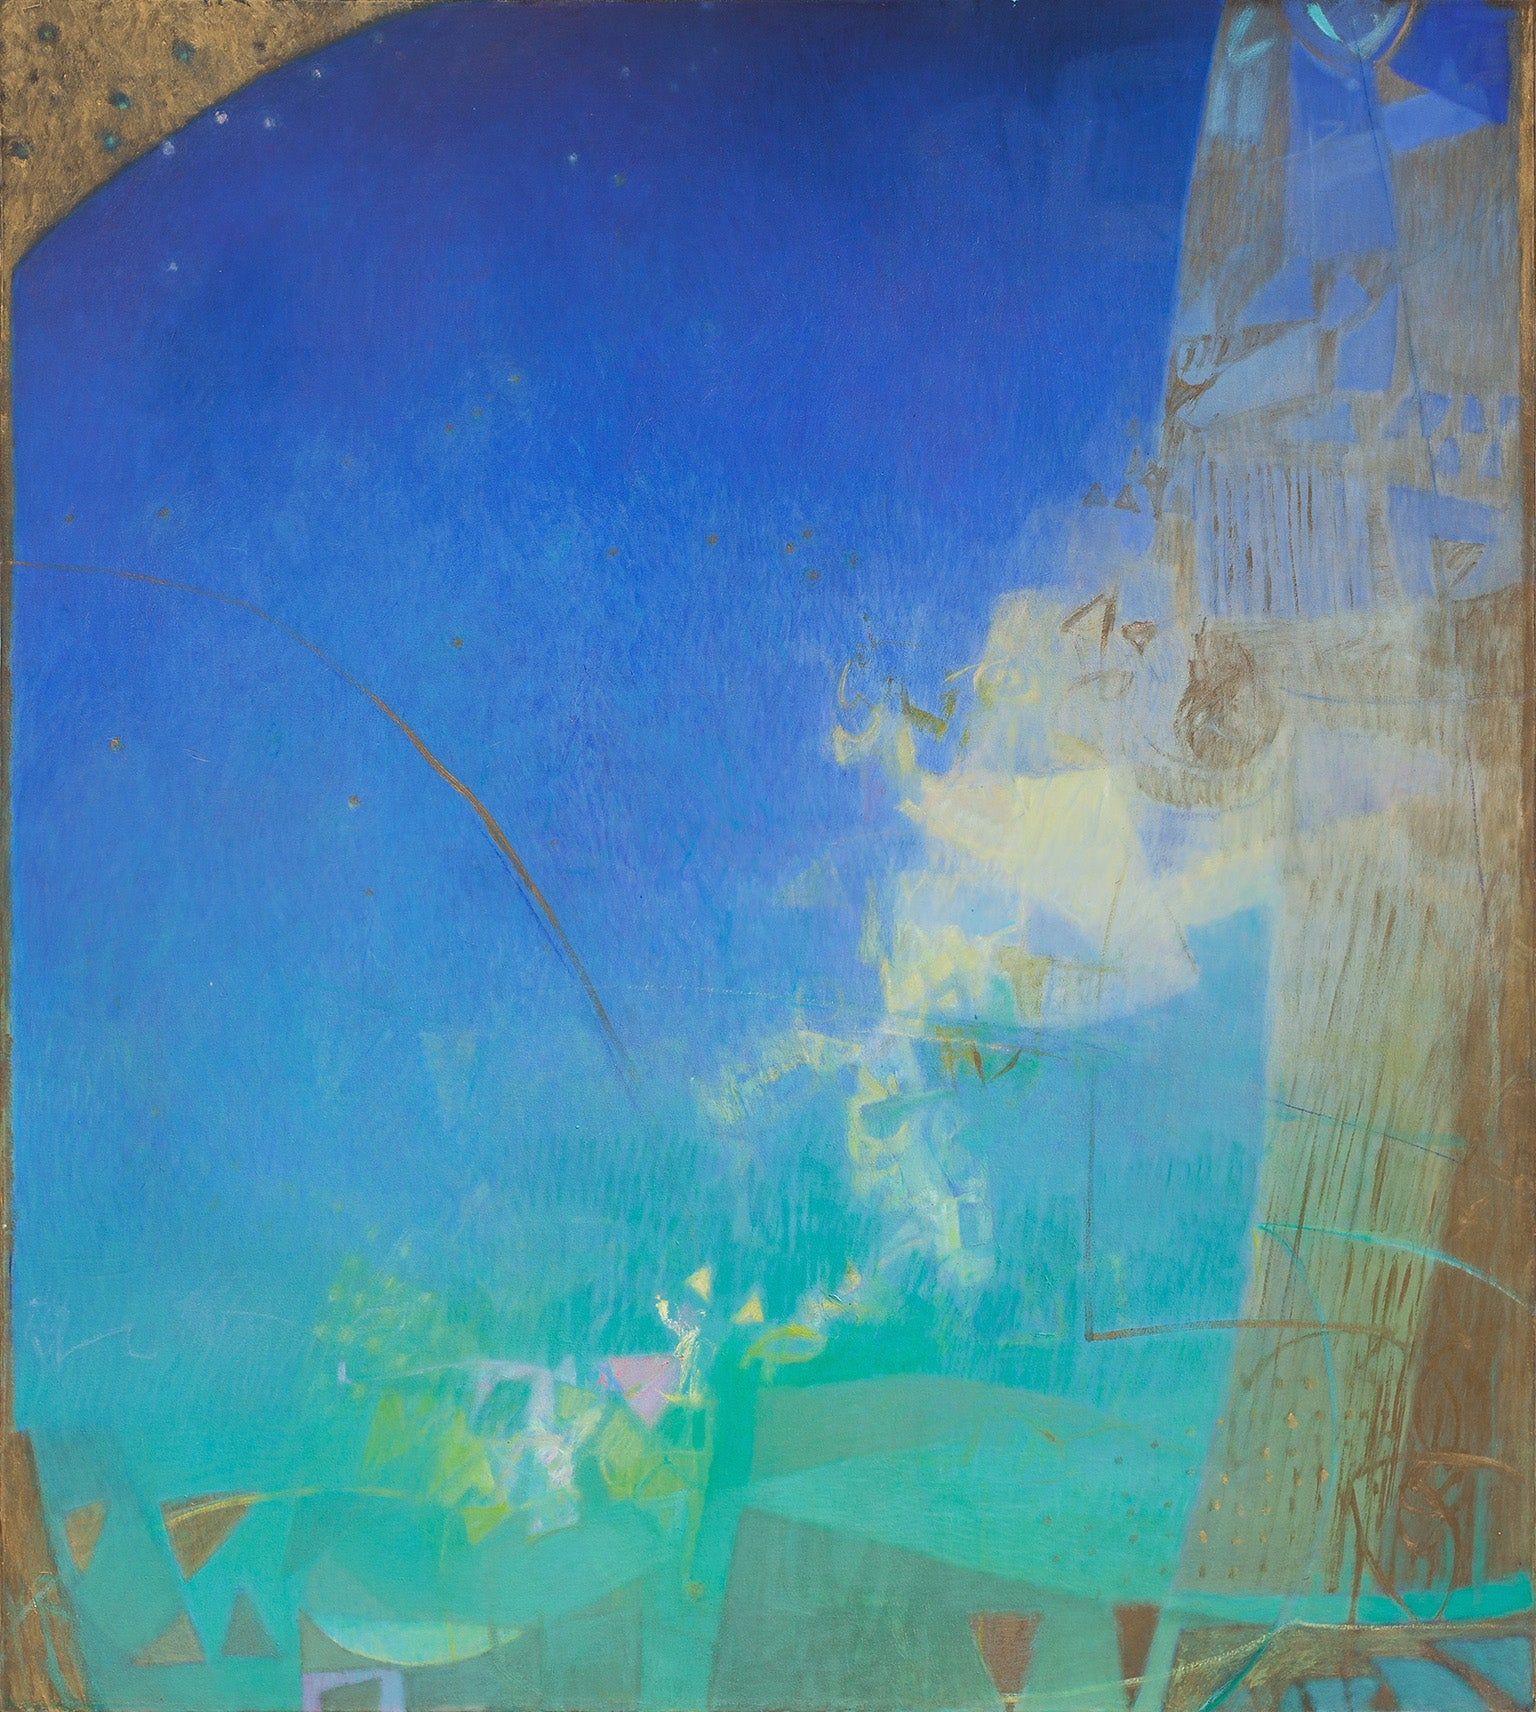 The Hours: Night - Large Abstract Oil Painting with Intense Blue Colors